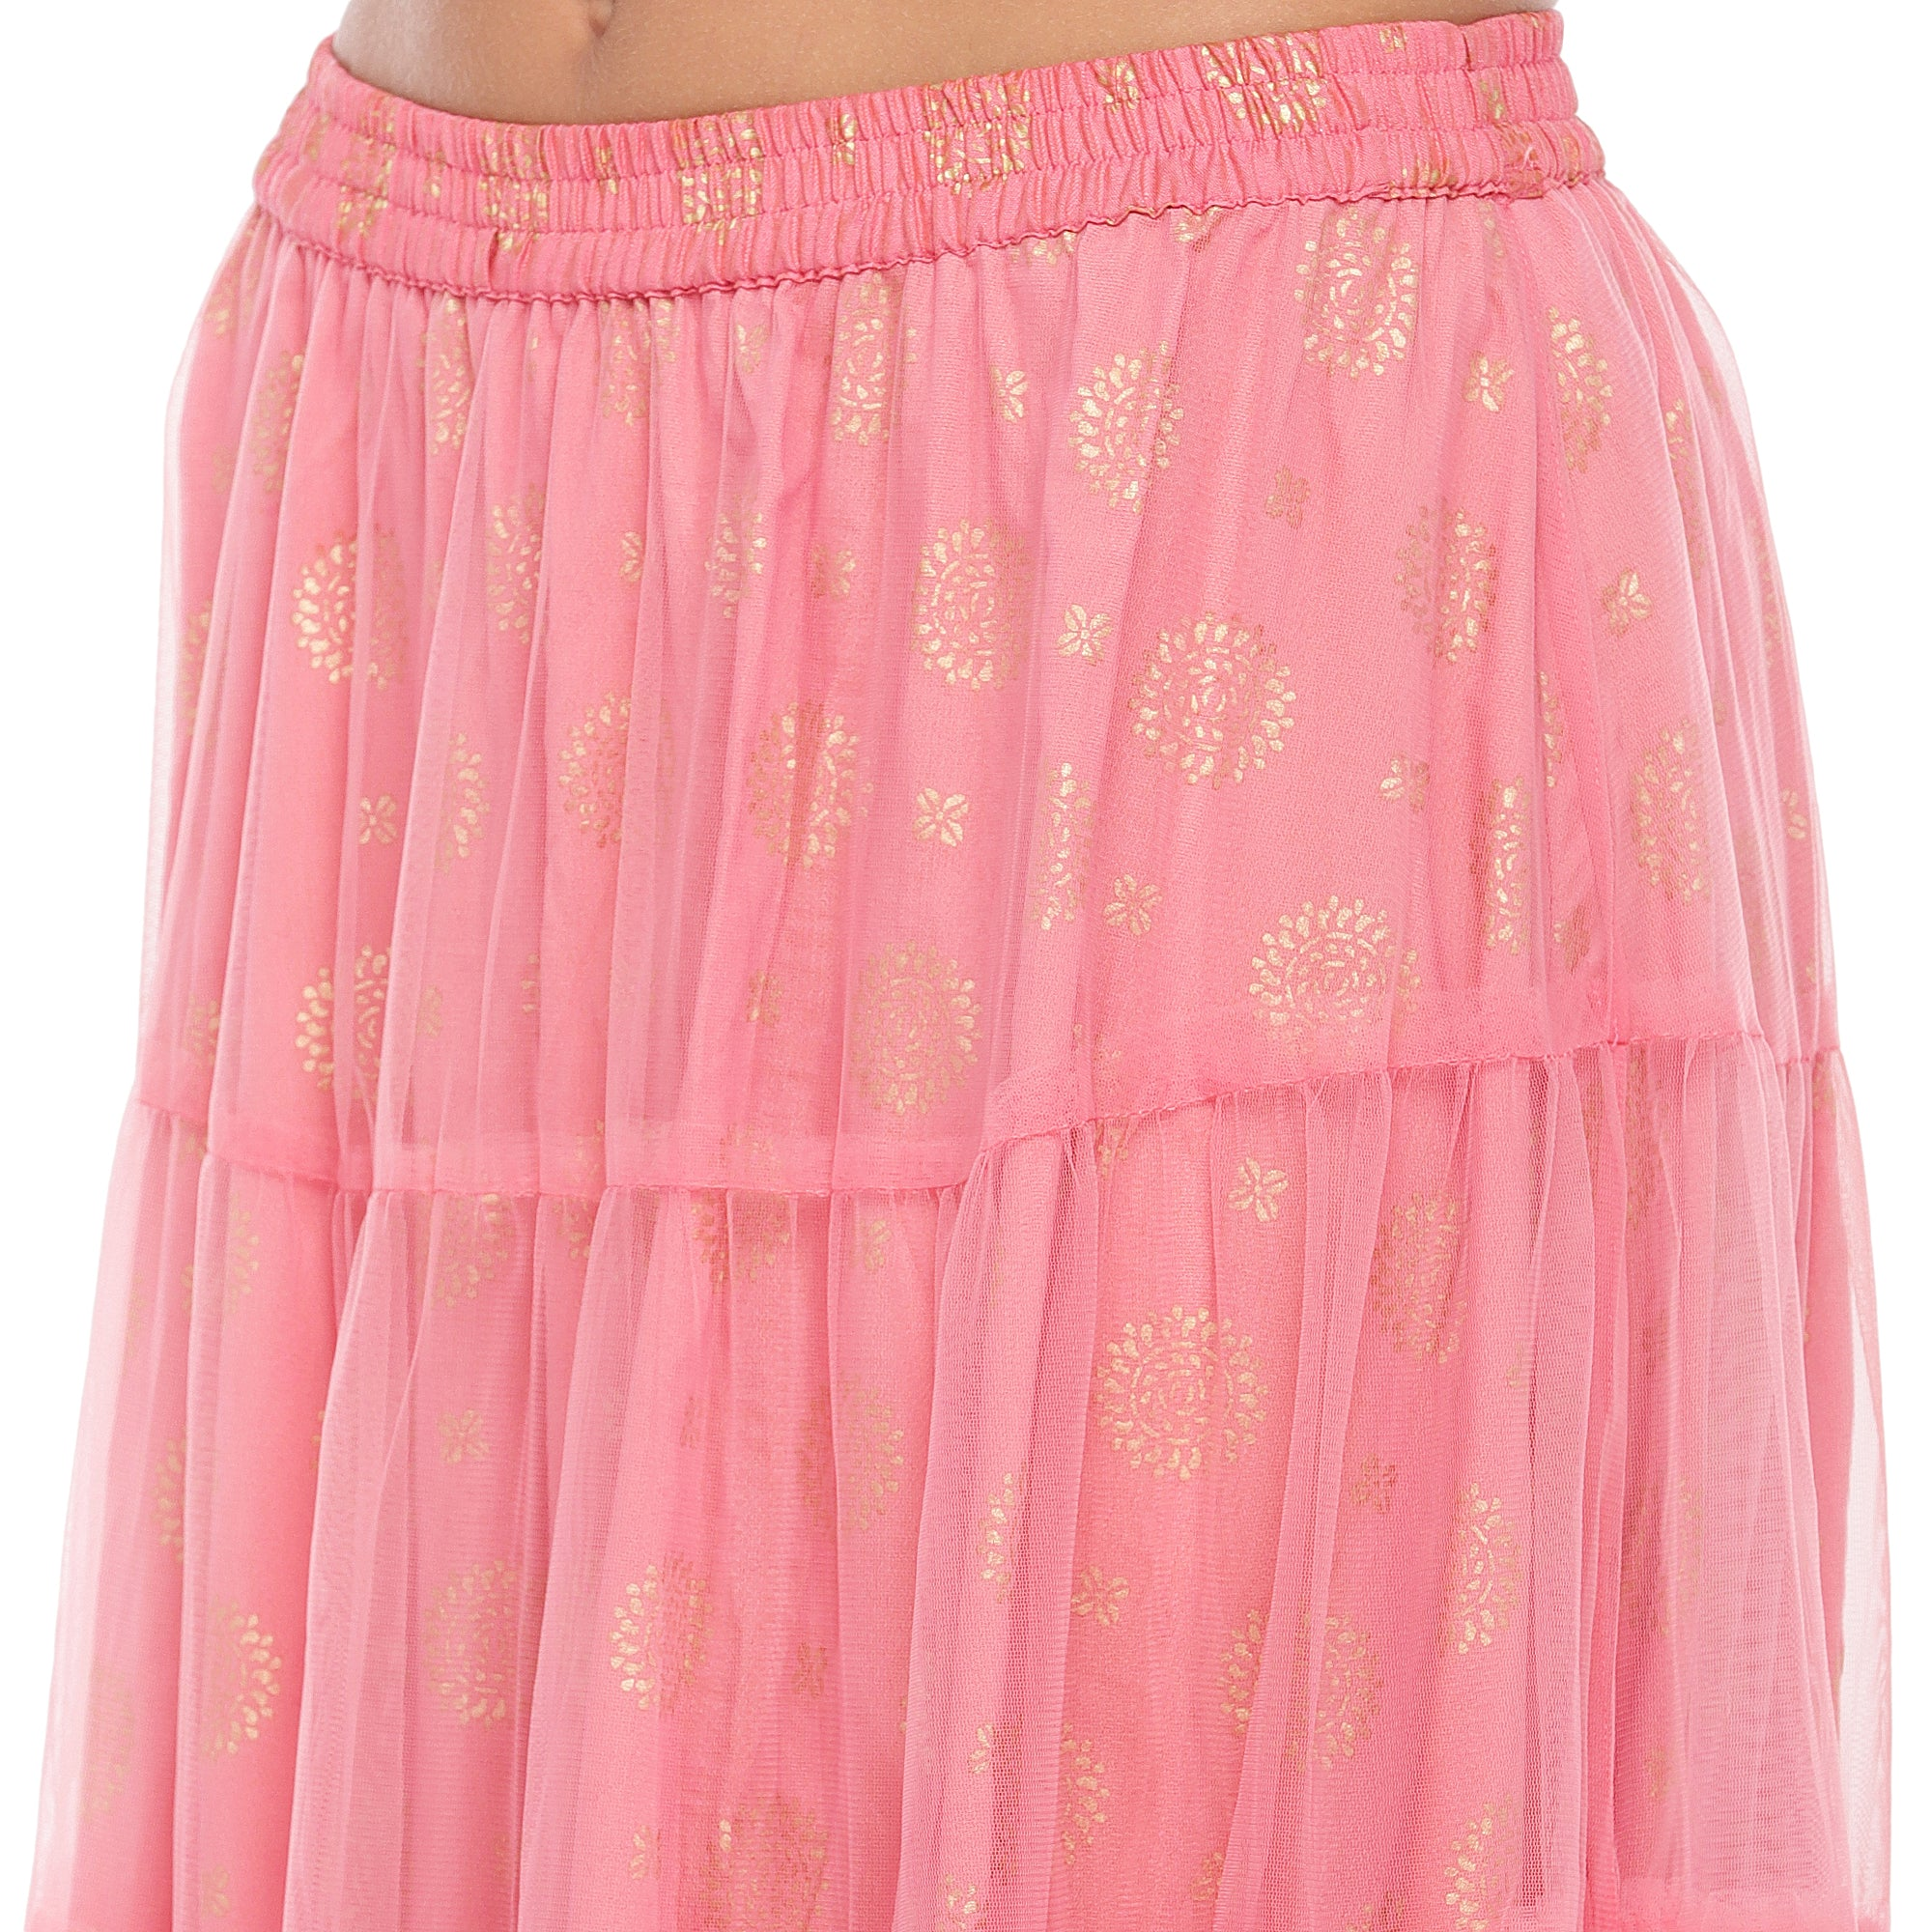 Peach Lace Maxi Skirt-5